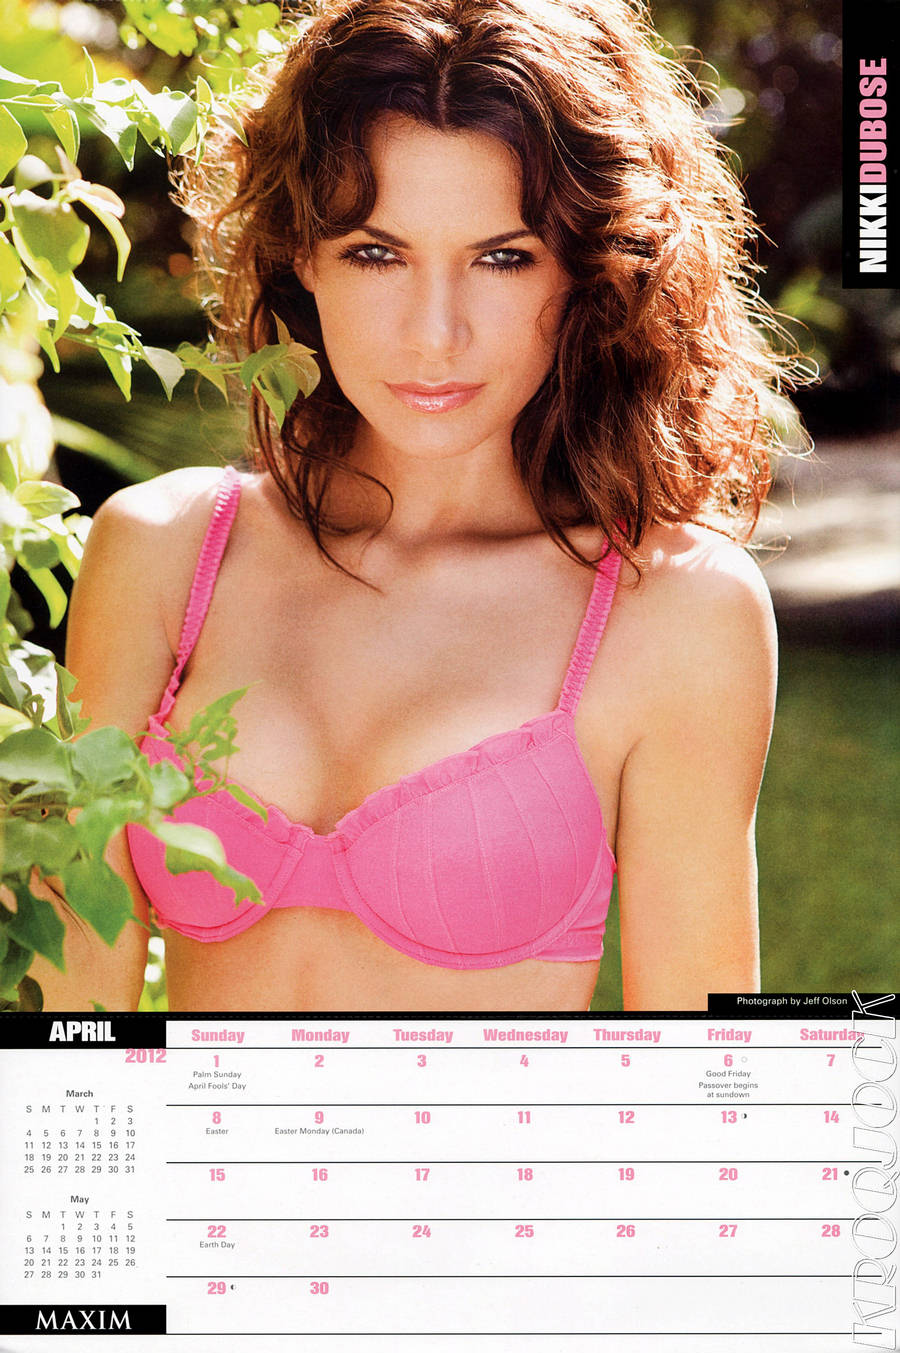 Nikki DuBose Maxim Calendar April 2012